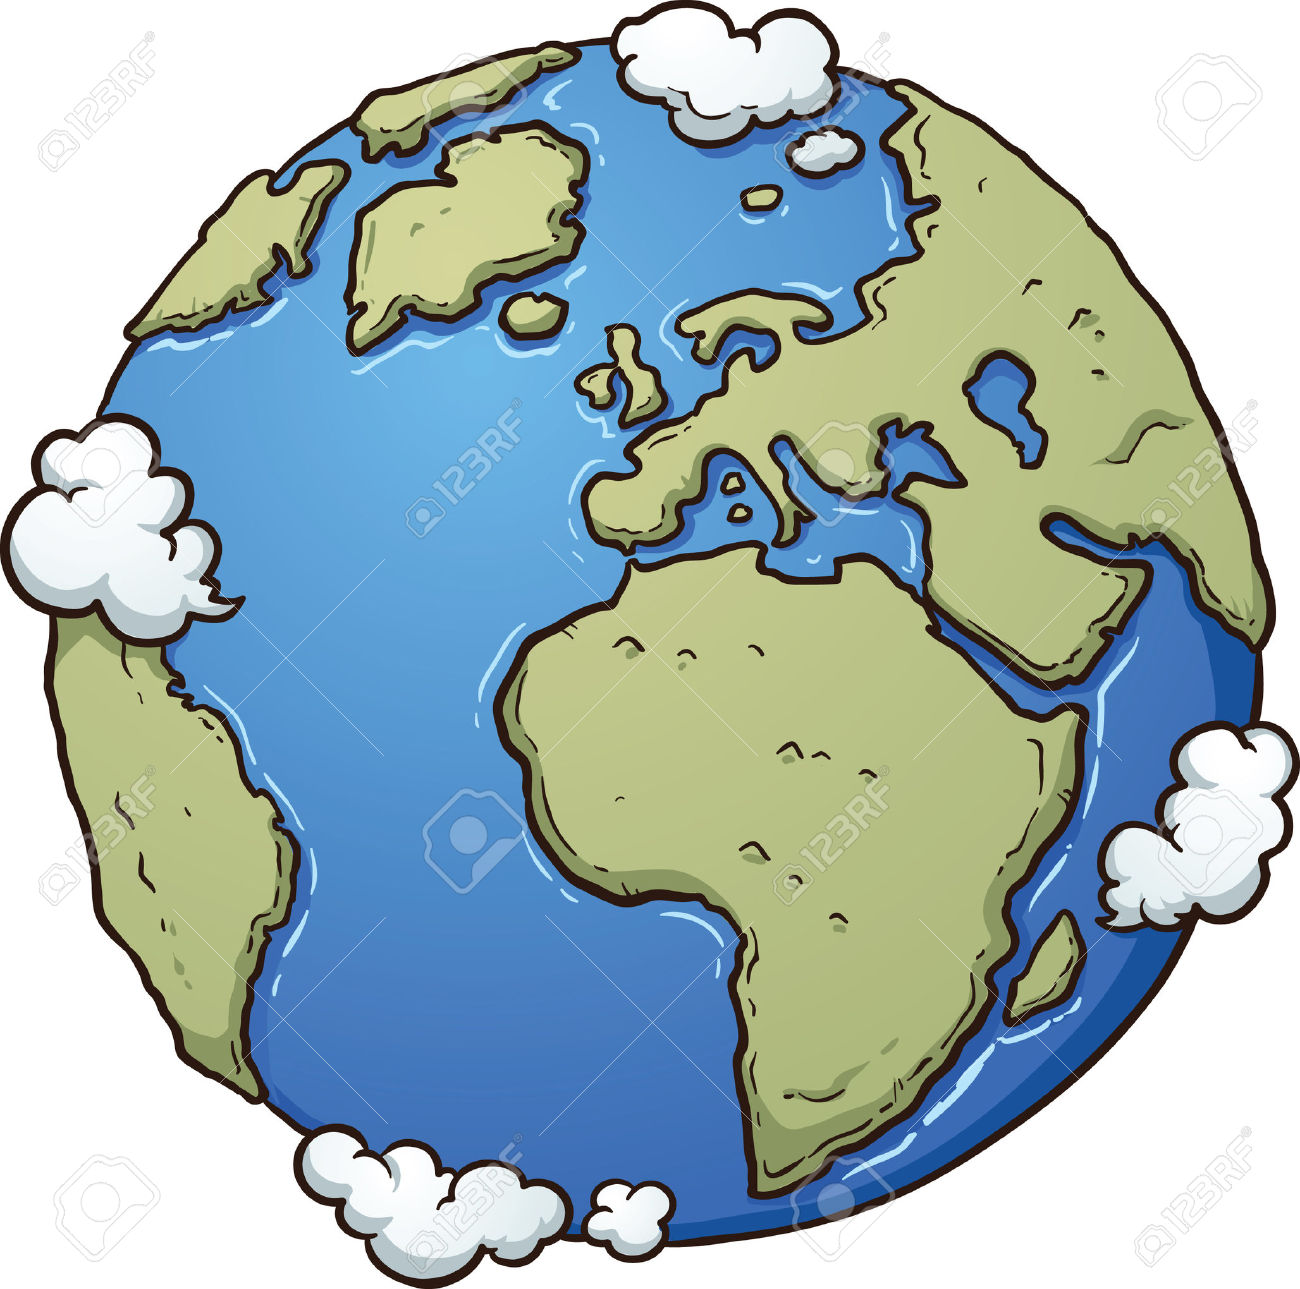 The Earth S Atmosphere Clipart